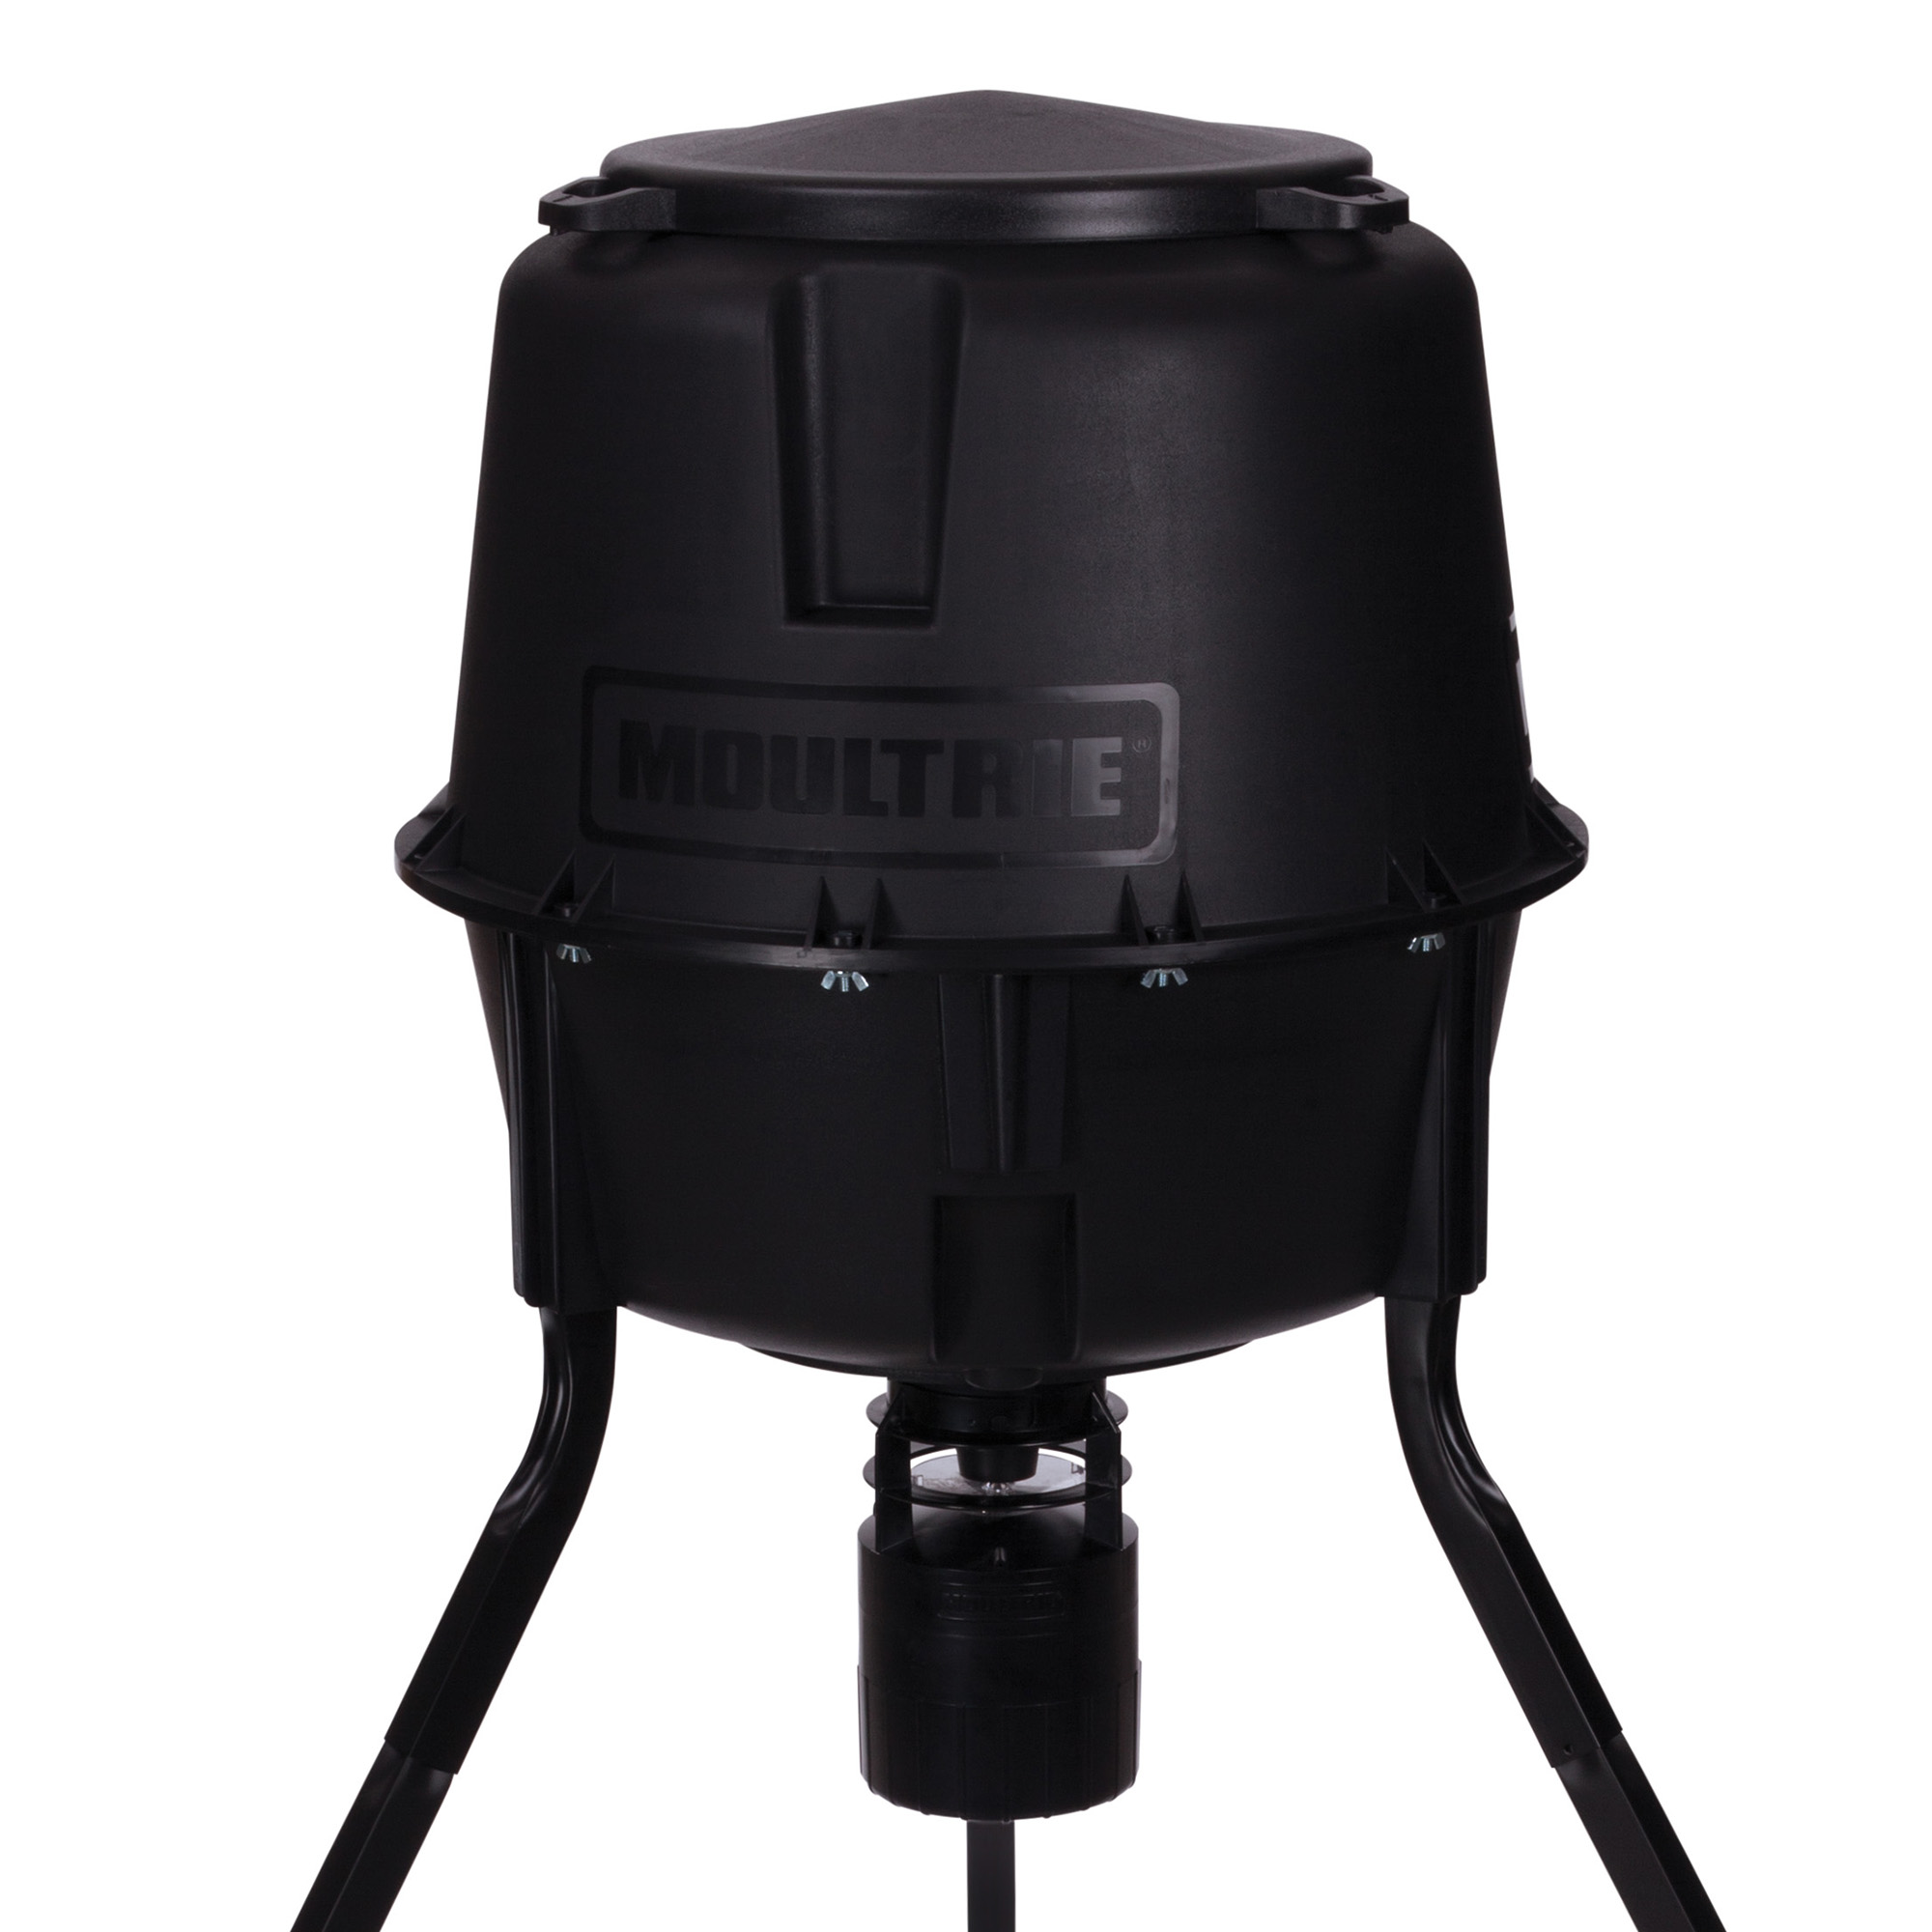 hunter moultrie feeder dick deer gallon pro sporting tripod s is p goods